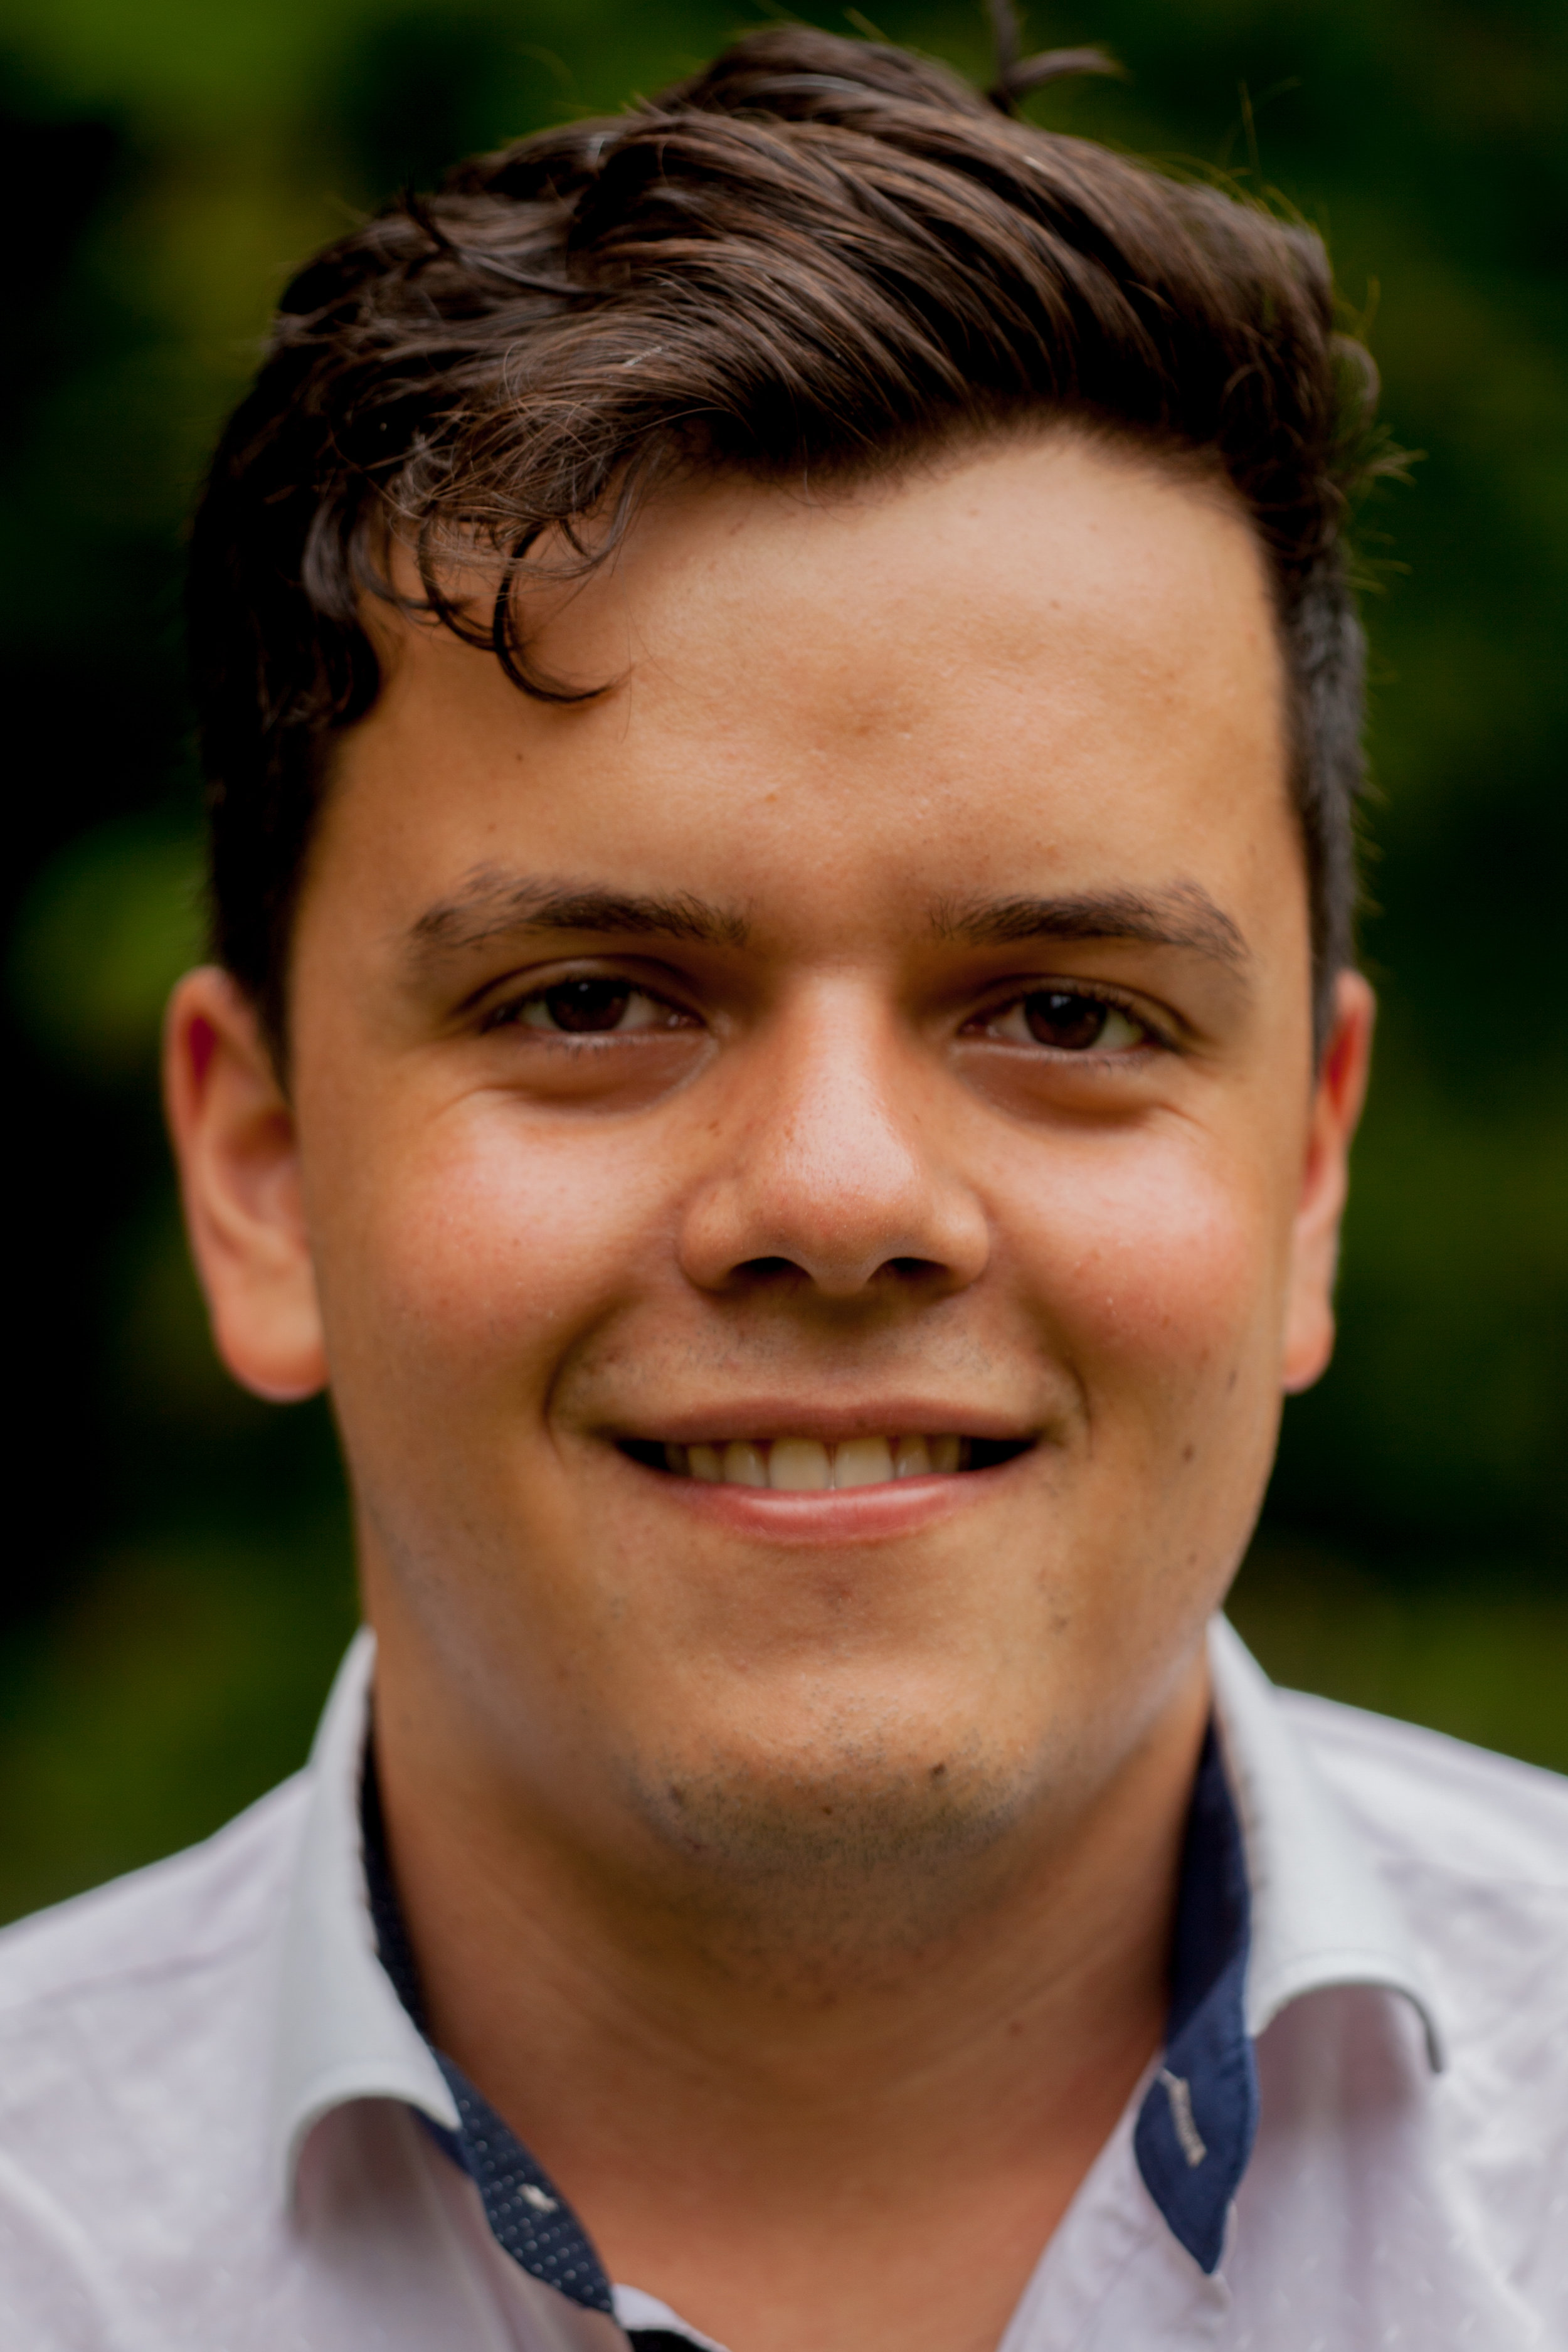 Guillermo Parada - Wellcome Trust Sanger Institute PhD Student (joint with Martin Hemberg)gp7@sanger.ac.uk